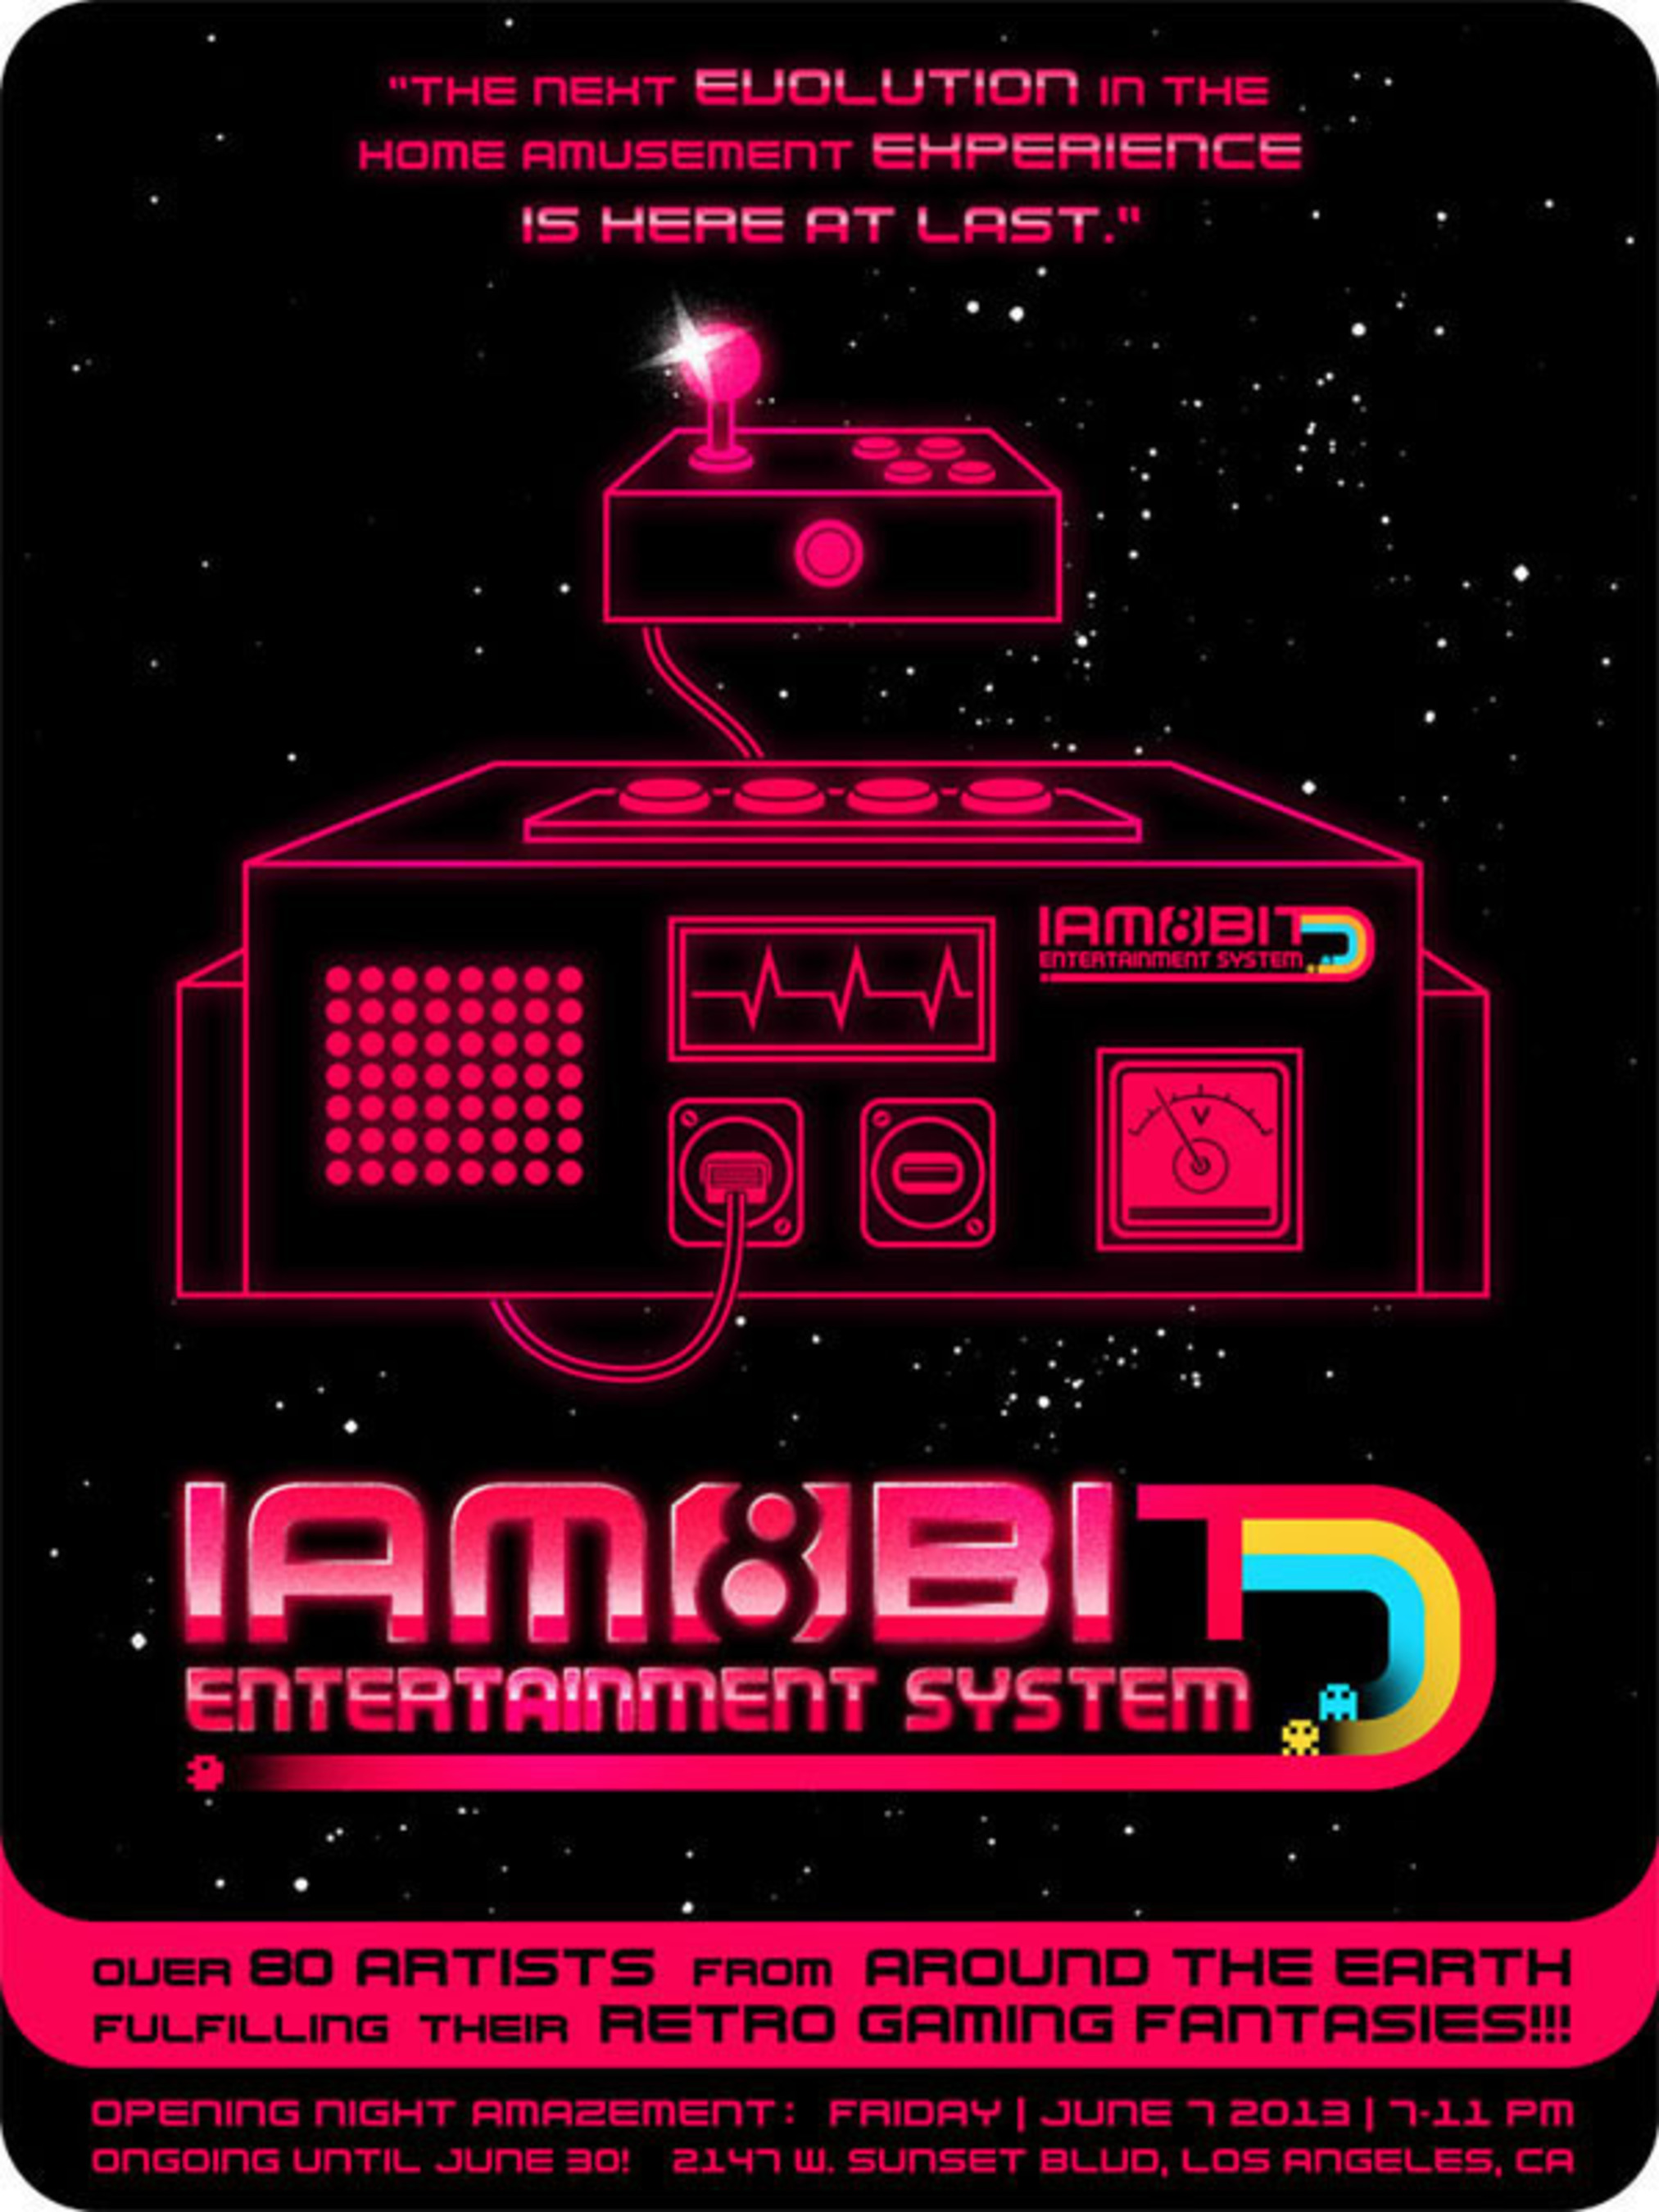 iam8bit Boots-Up iam8bit Entertainment System, A Retro Gaming Gallery Experience